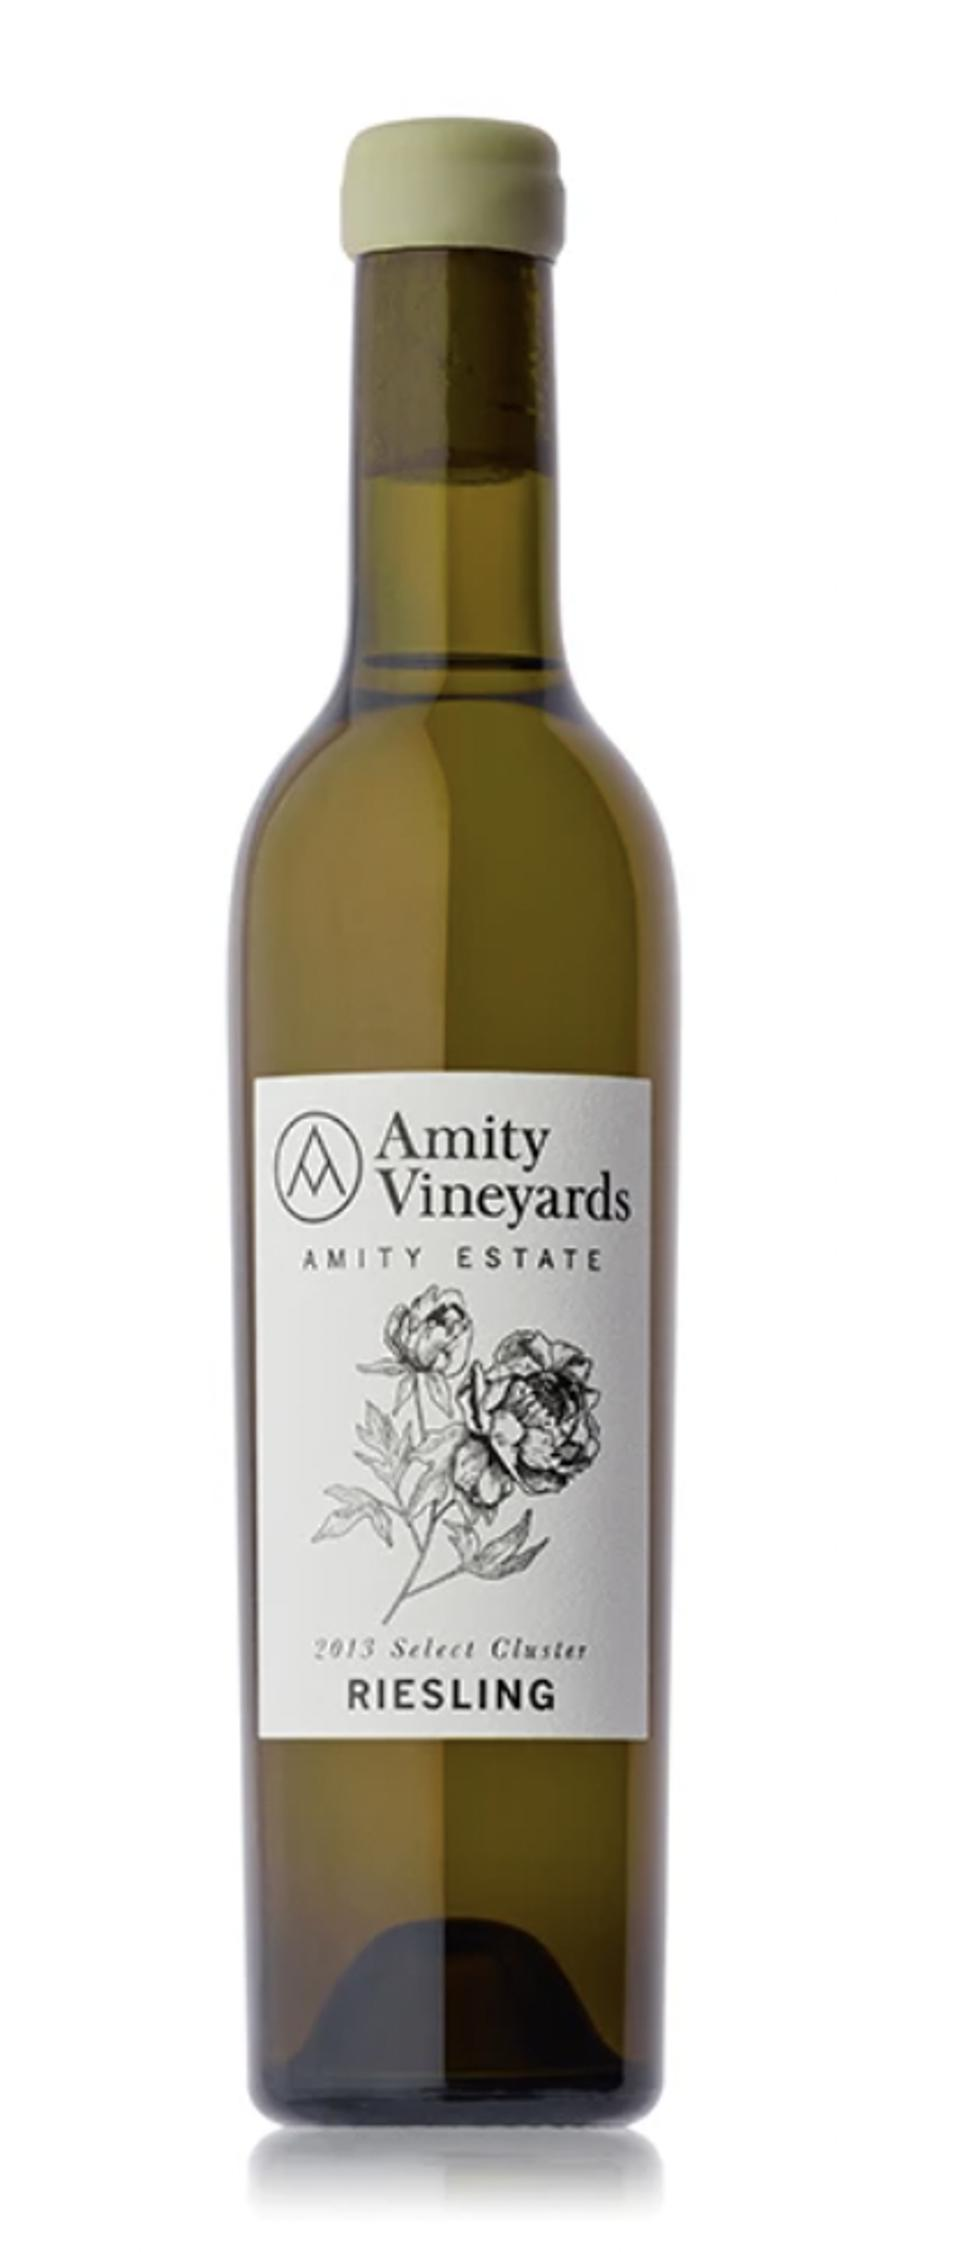 Amity Vineyards 2013 Select Cluster Riesling